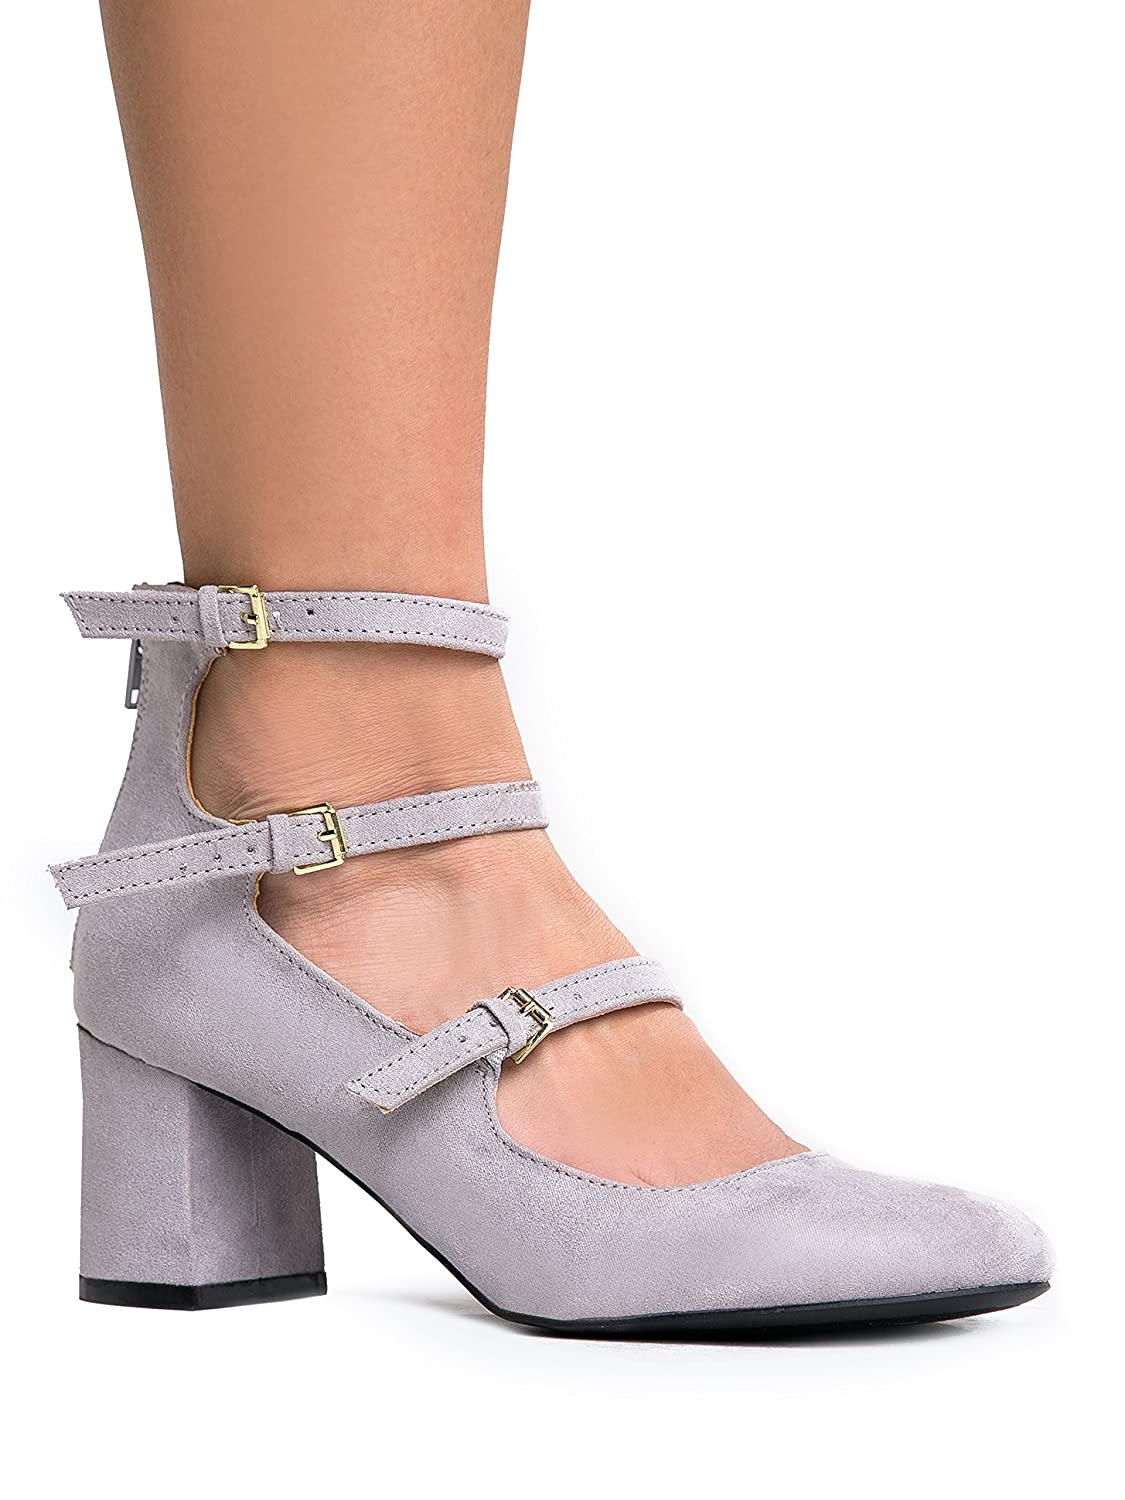 3 Strap Mary Jane Heel Pumps Ð Buckled Strappy Low Block Heel - Cute Ankle Party Heel - Mimosa by J. Adams